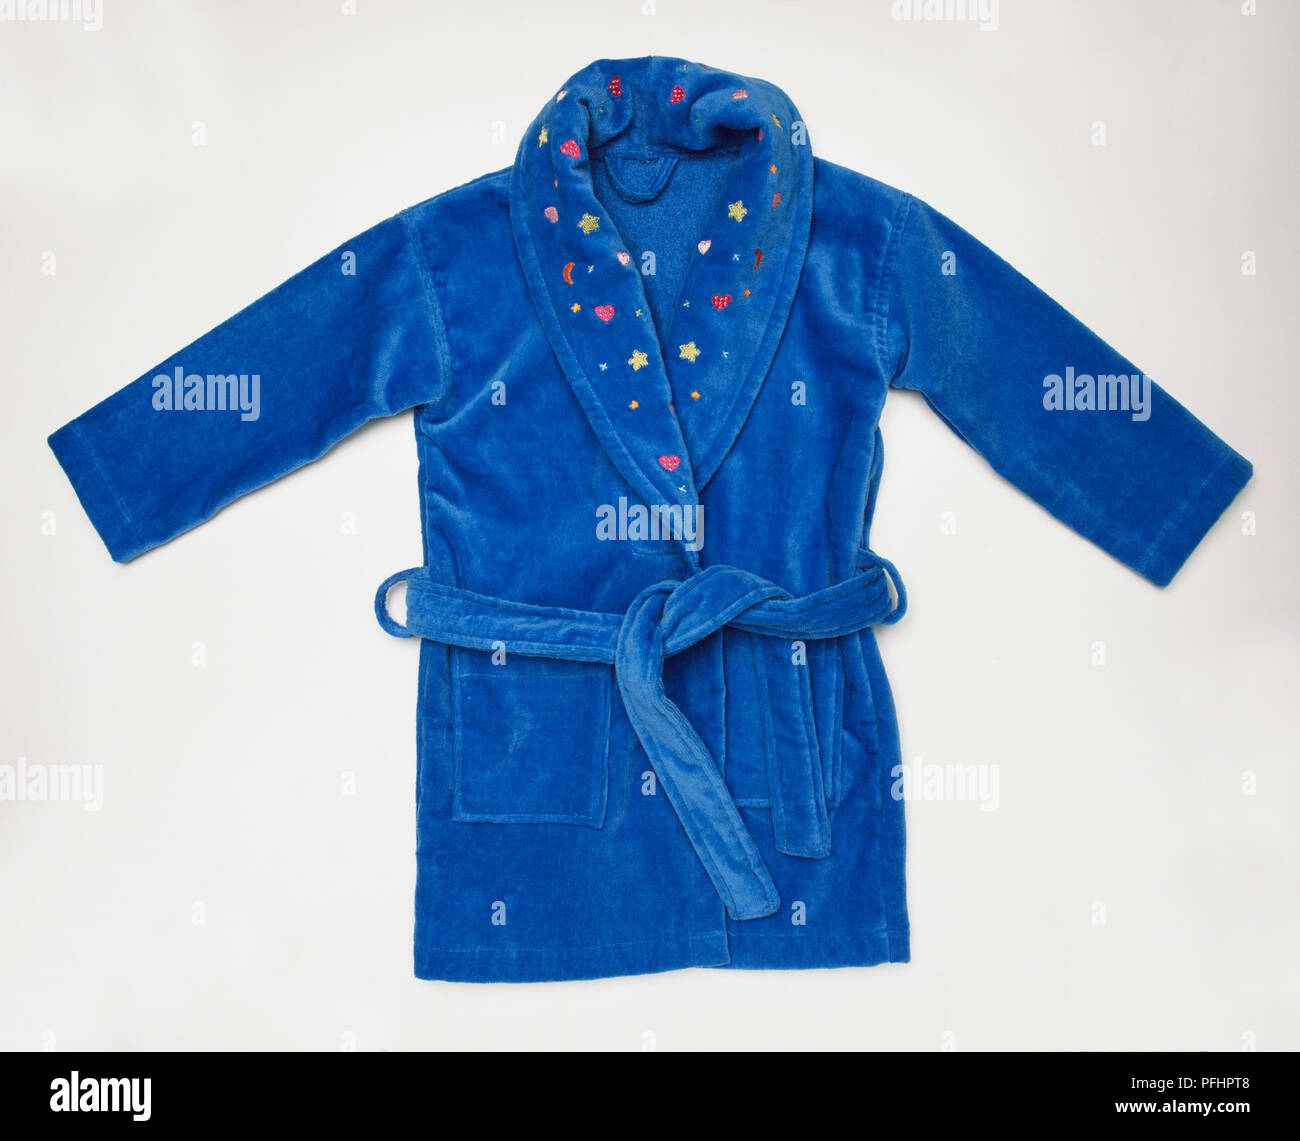 Blue dressing gown. - Stock Image